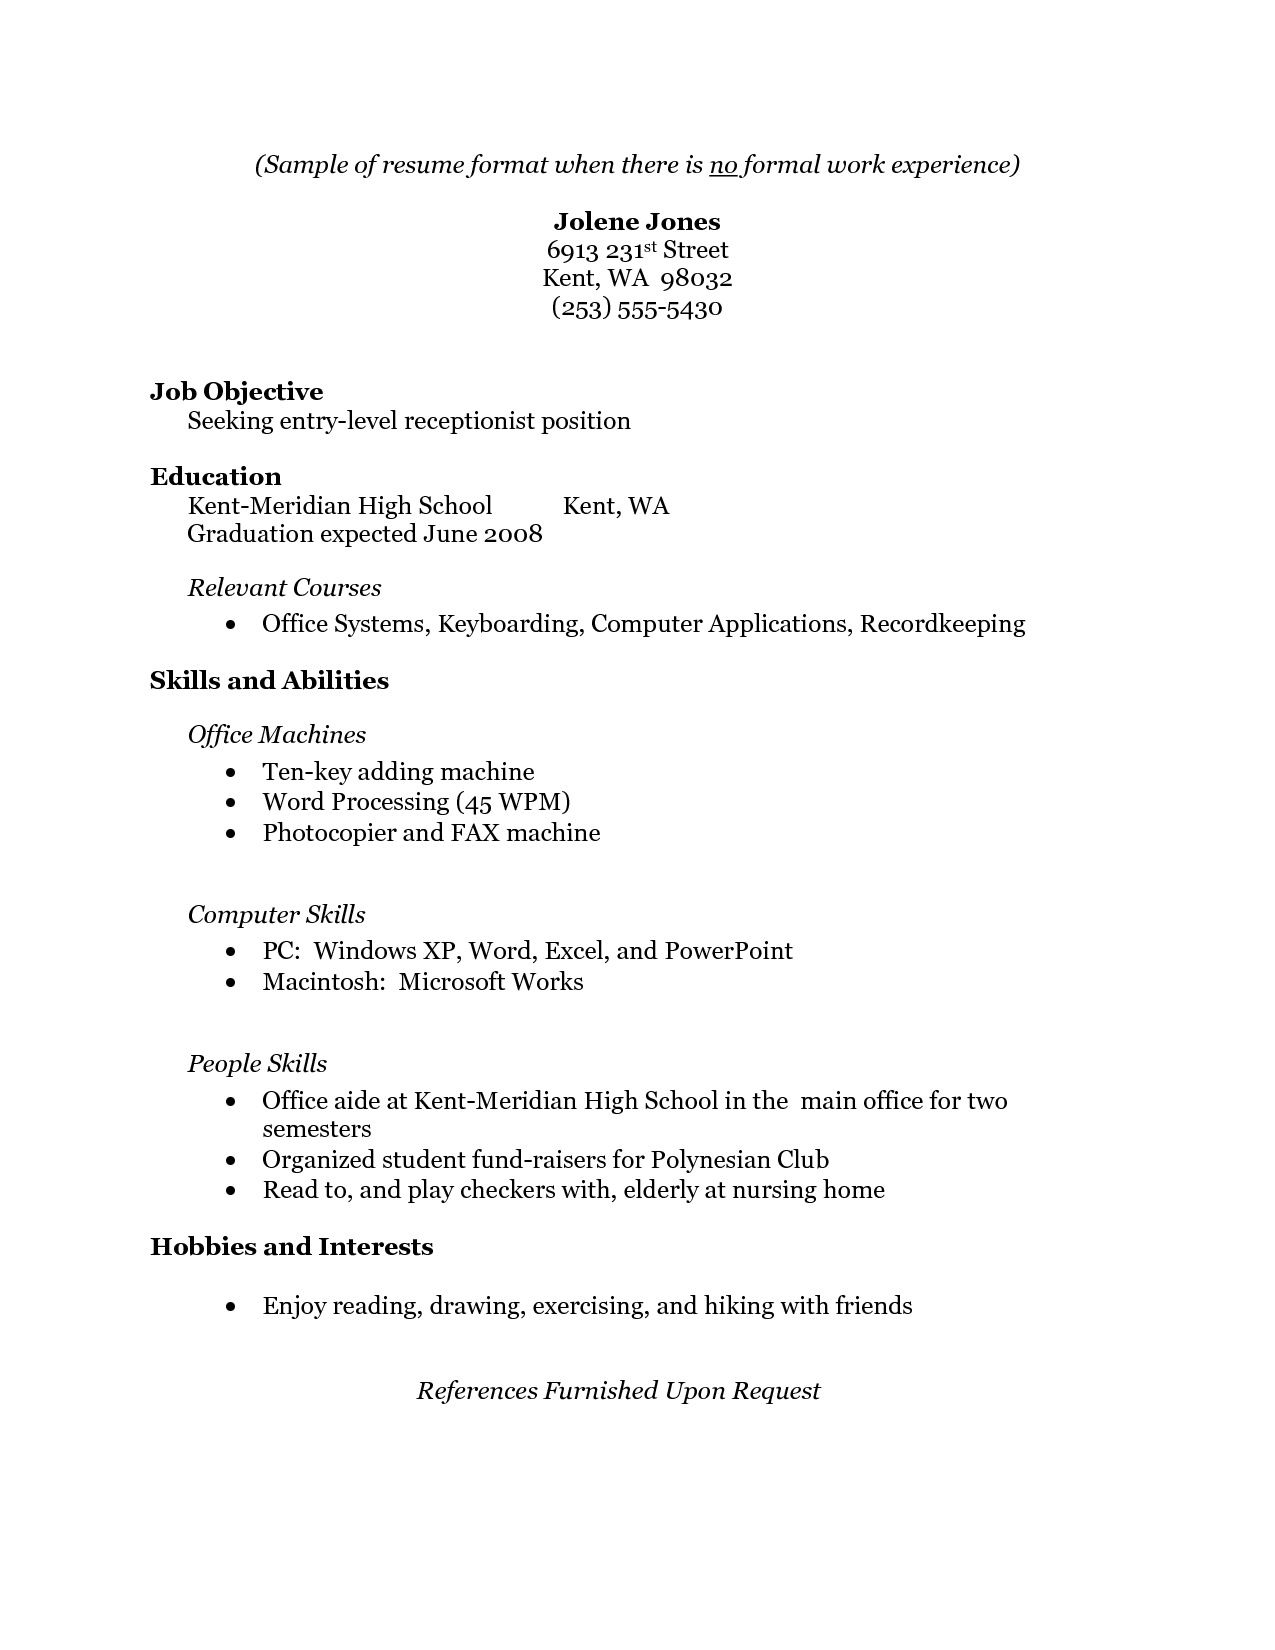 sample resume format for high school graduate with no